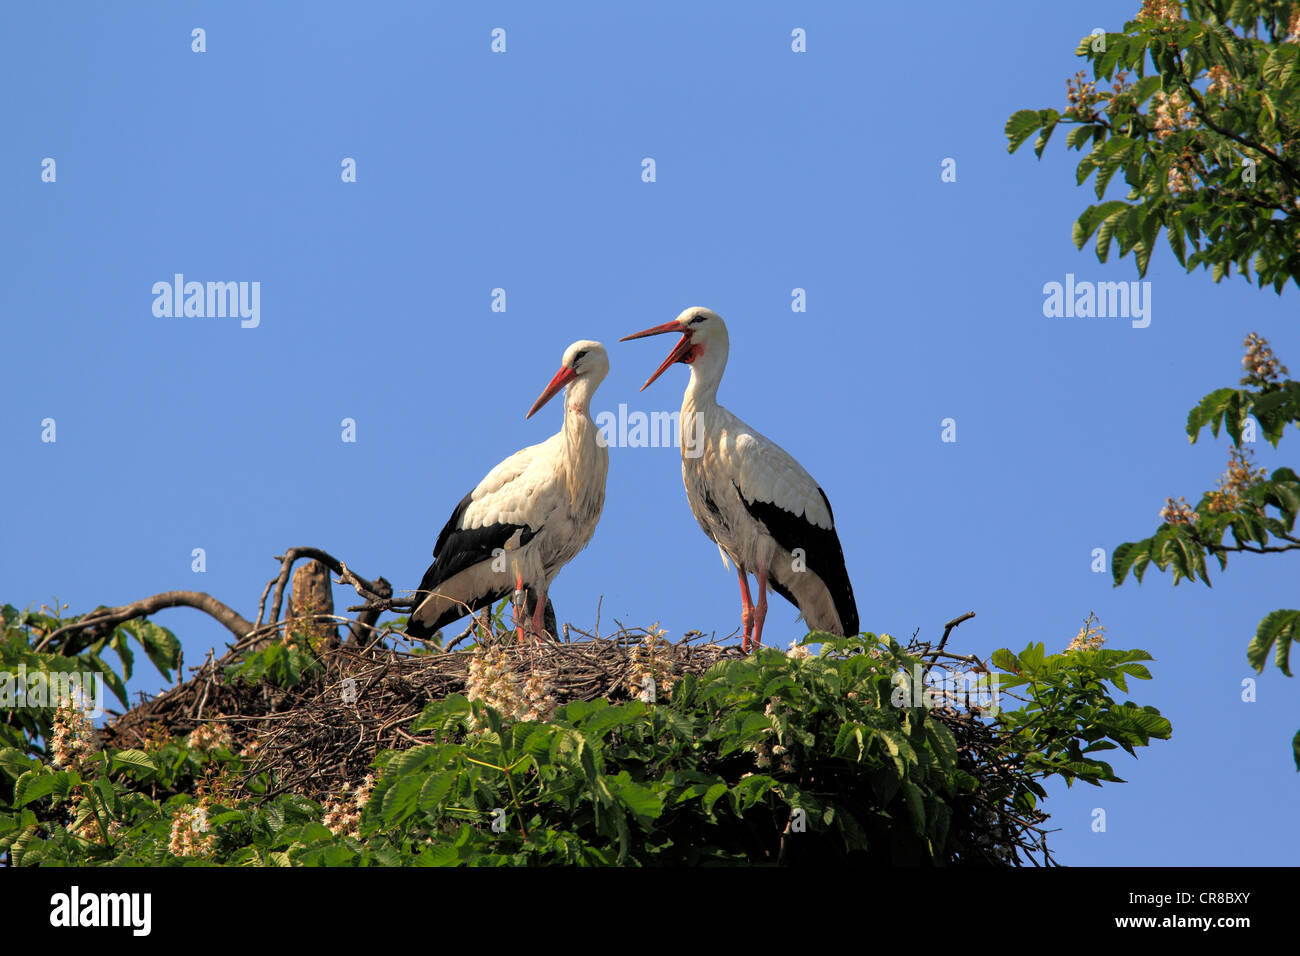 White Storks (Ciconia ciconia), pair on a nest in a chestnut tree, Mannheim, Baden-Wuerttemberg, Germany, Europe - Stock Image